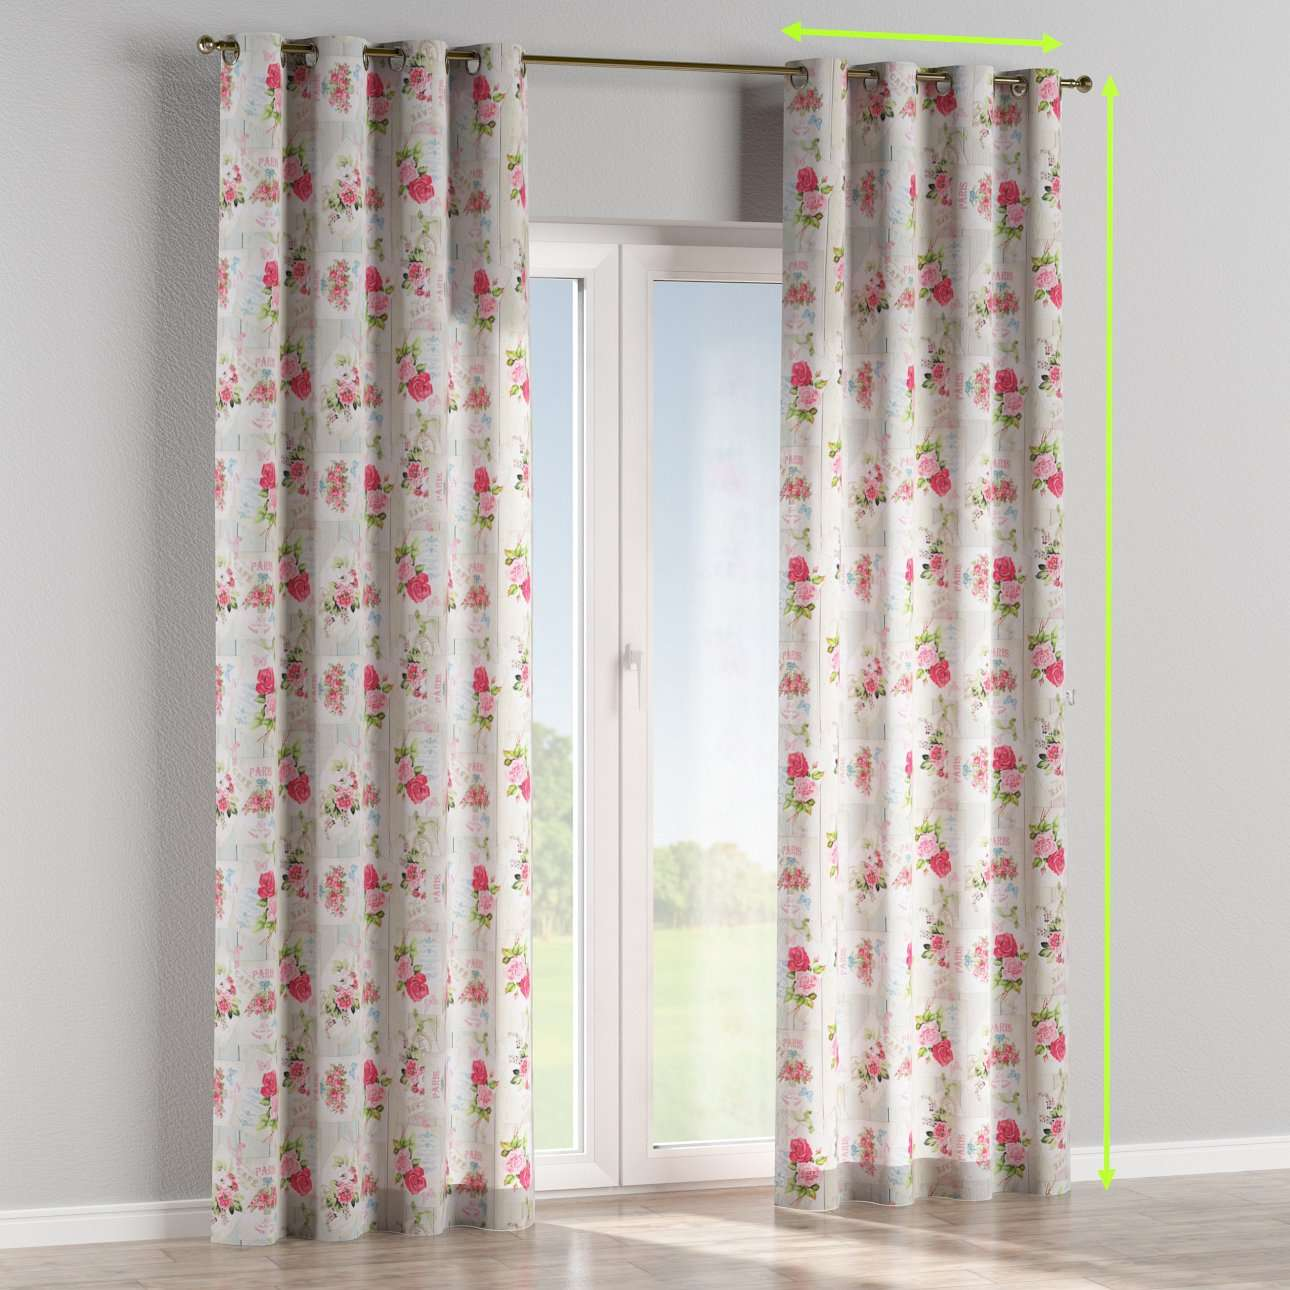 Eyelet lined curtains in collection Ashley, fabric: 140-19